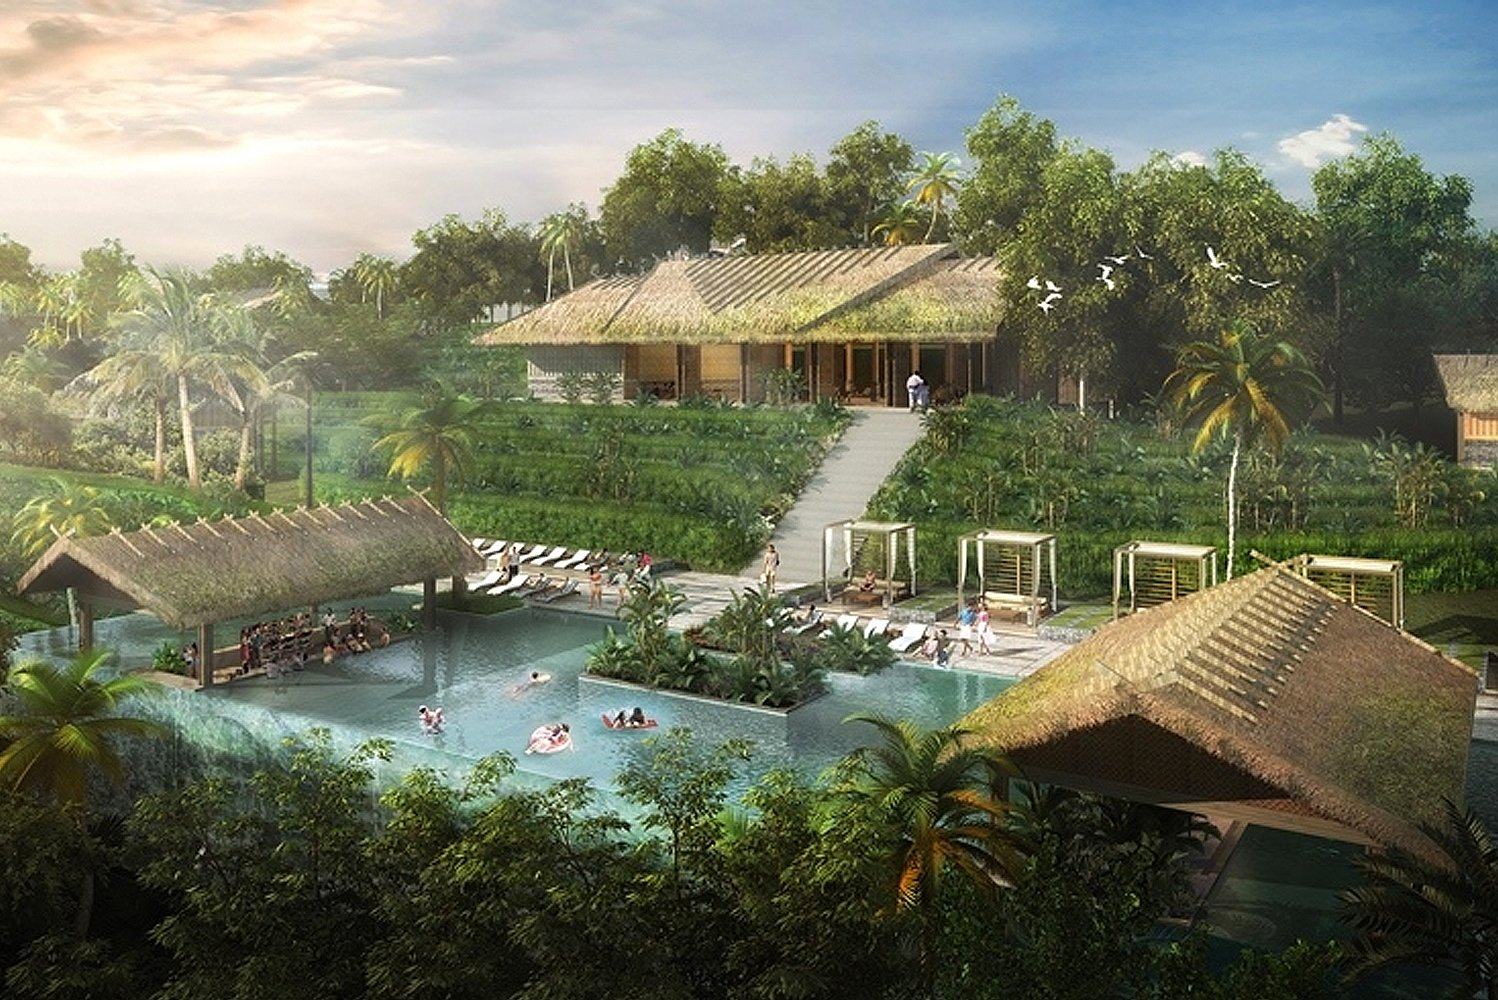 There will be 500 ocean-facing villas.